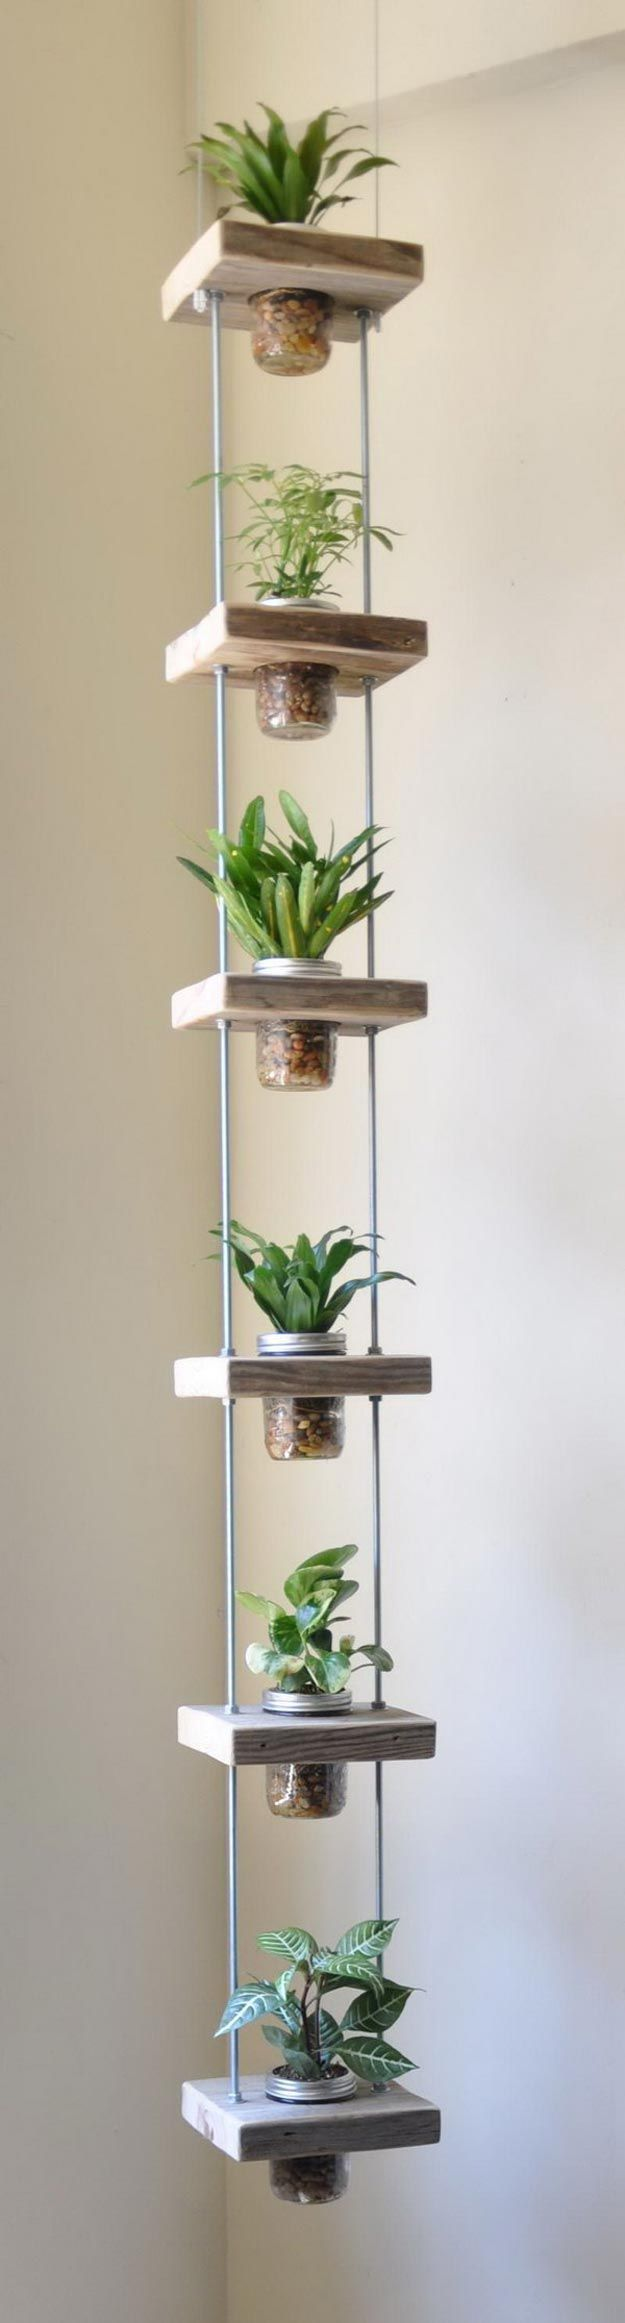 Mason Jar Vertical Herb Garden | How To Grow Your Herbs Indoor - Gardening Tips and Ideas by Pioneer Settler at http://pioneersettler.com/indoor-herb-garden-ideas/